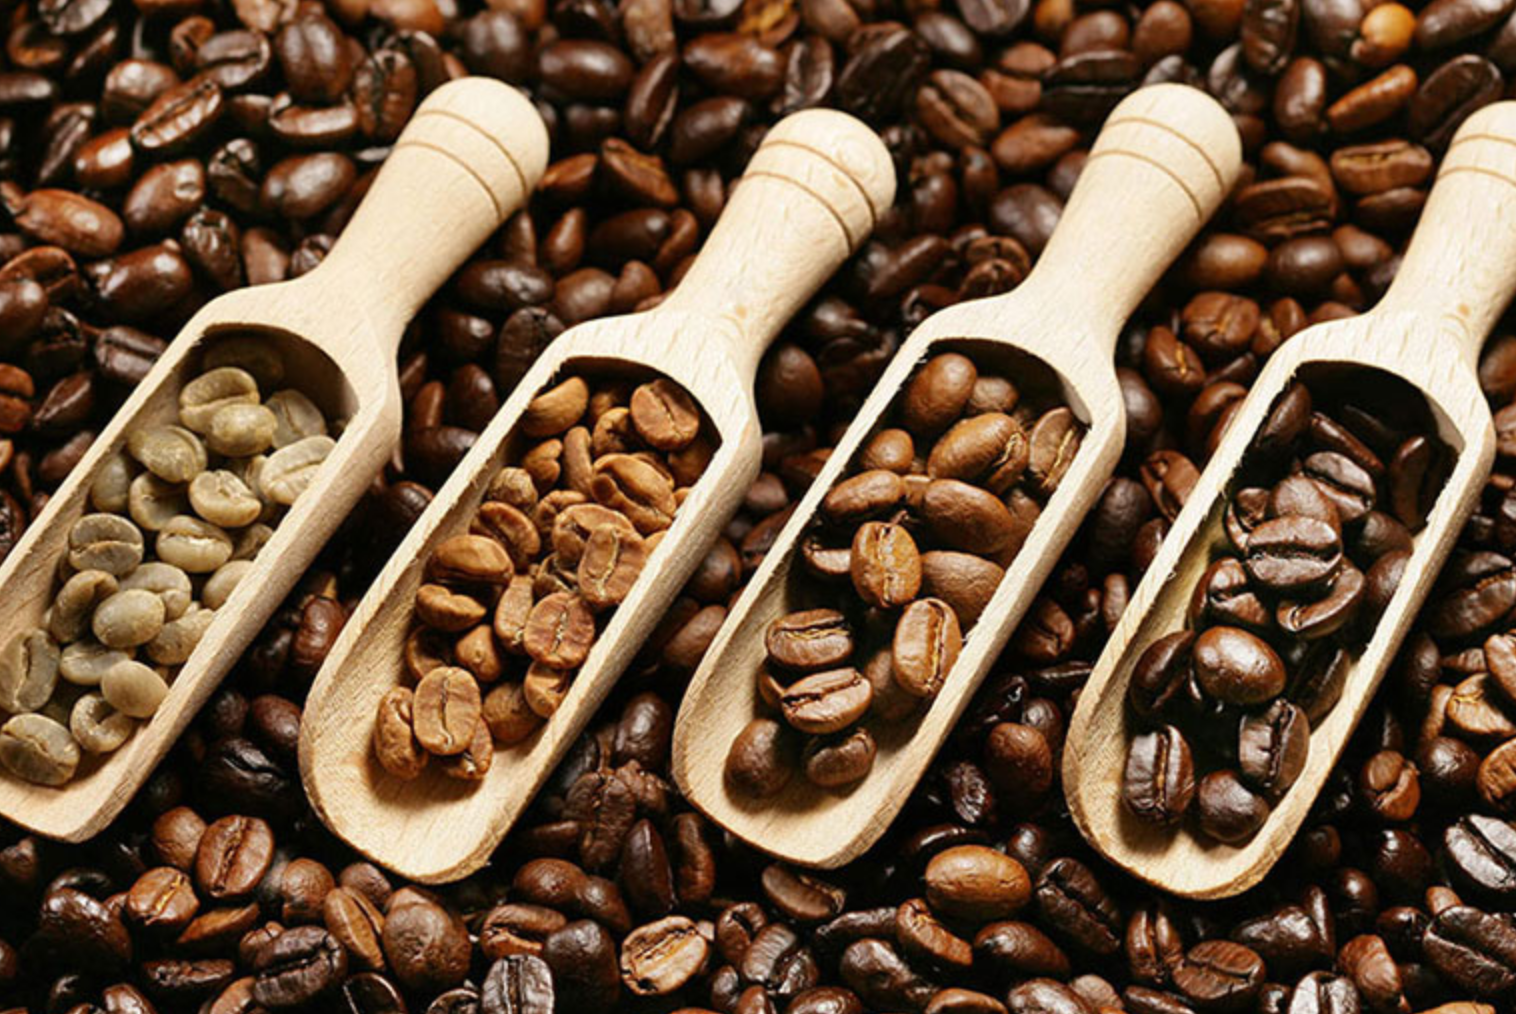 roasting affects the taste of coffee